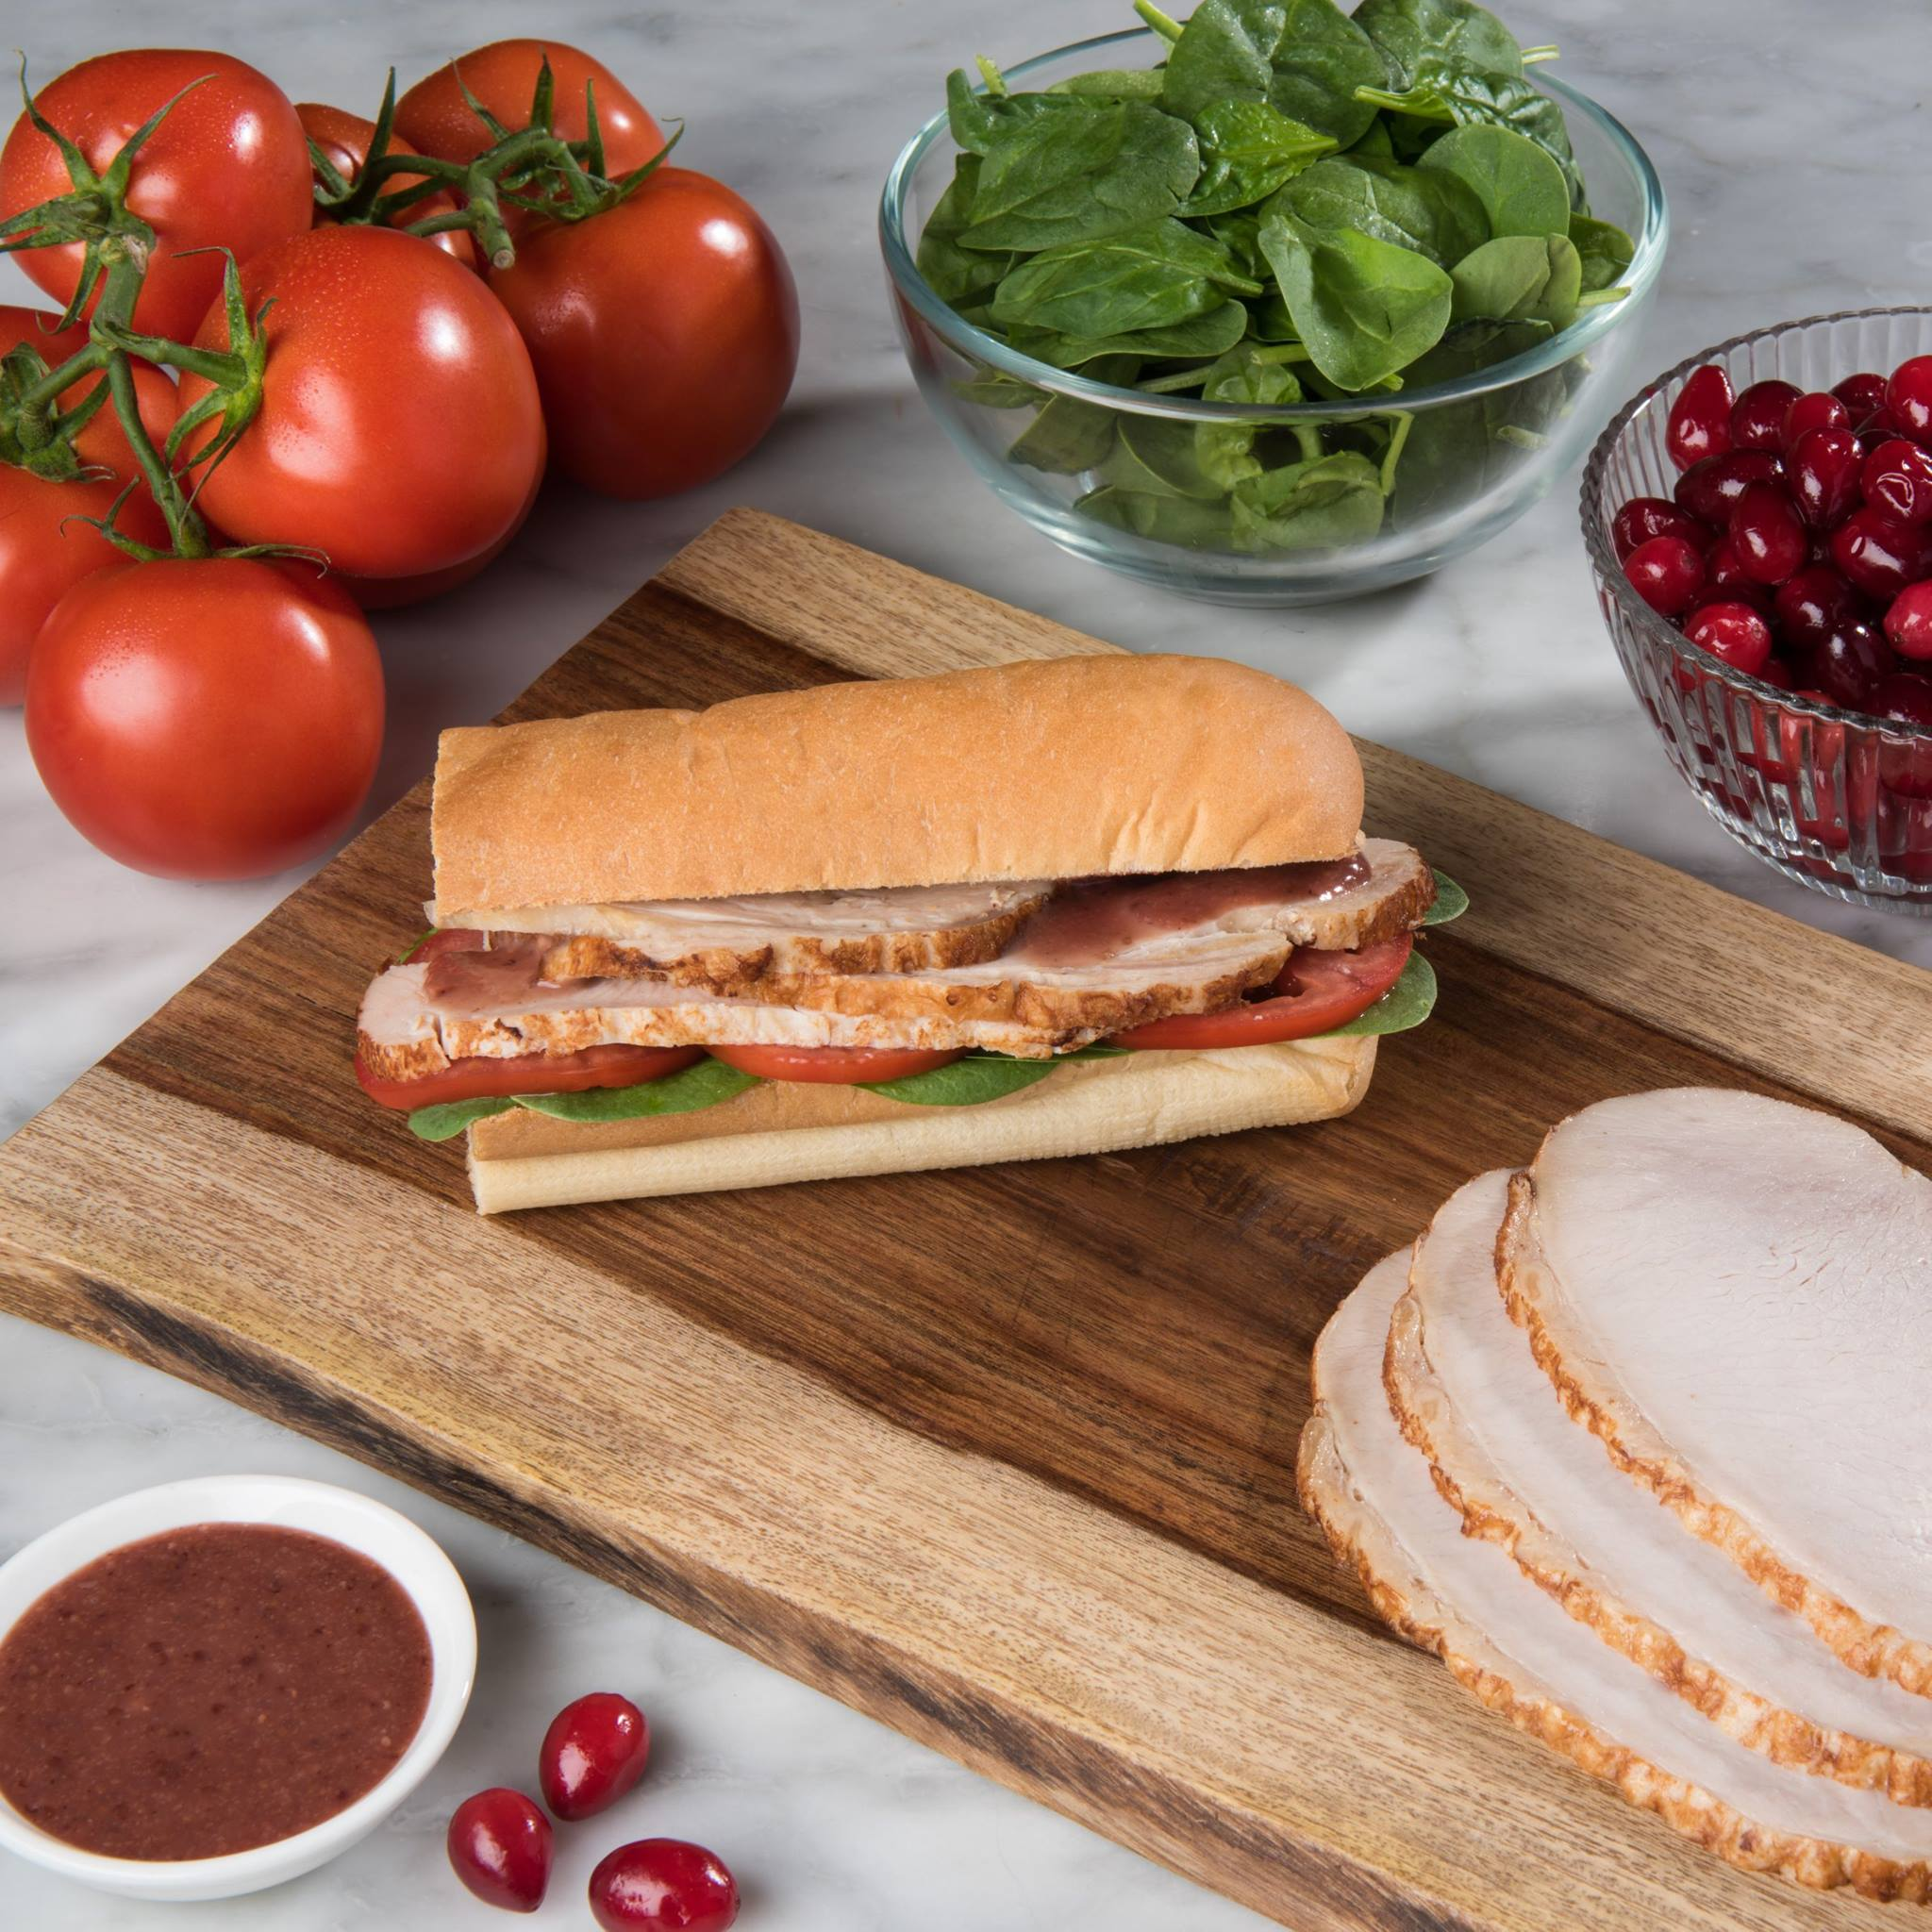 Subway Canada National Sandwich Day Deal: FREE Sandwich When You Buy Sandwich & Drink *Today Only*